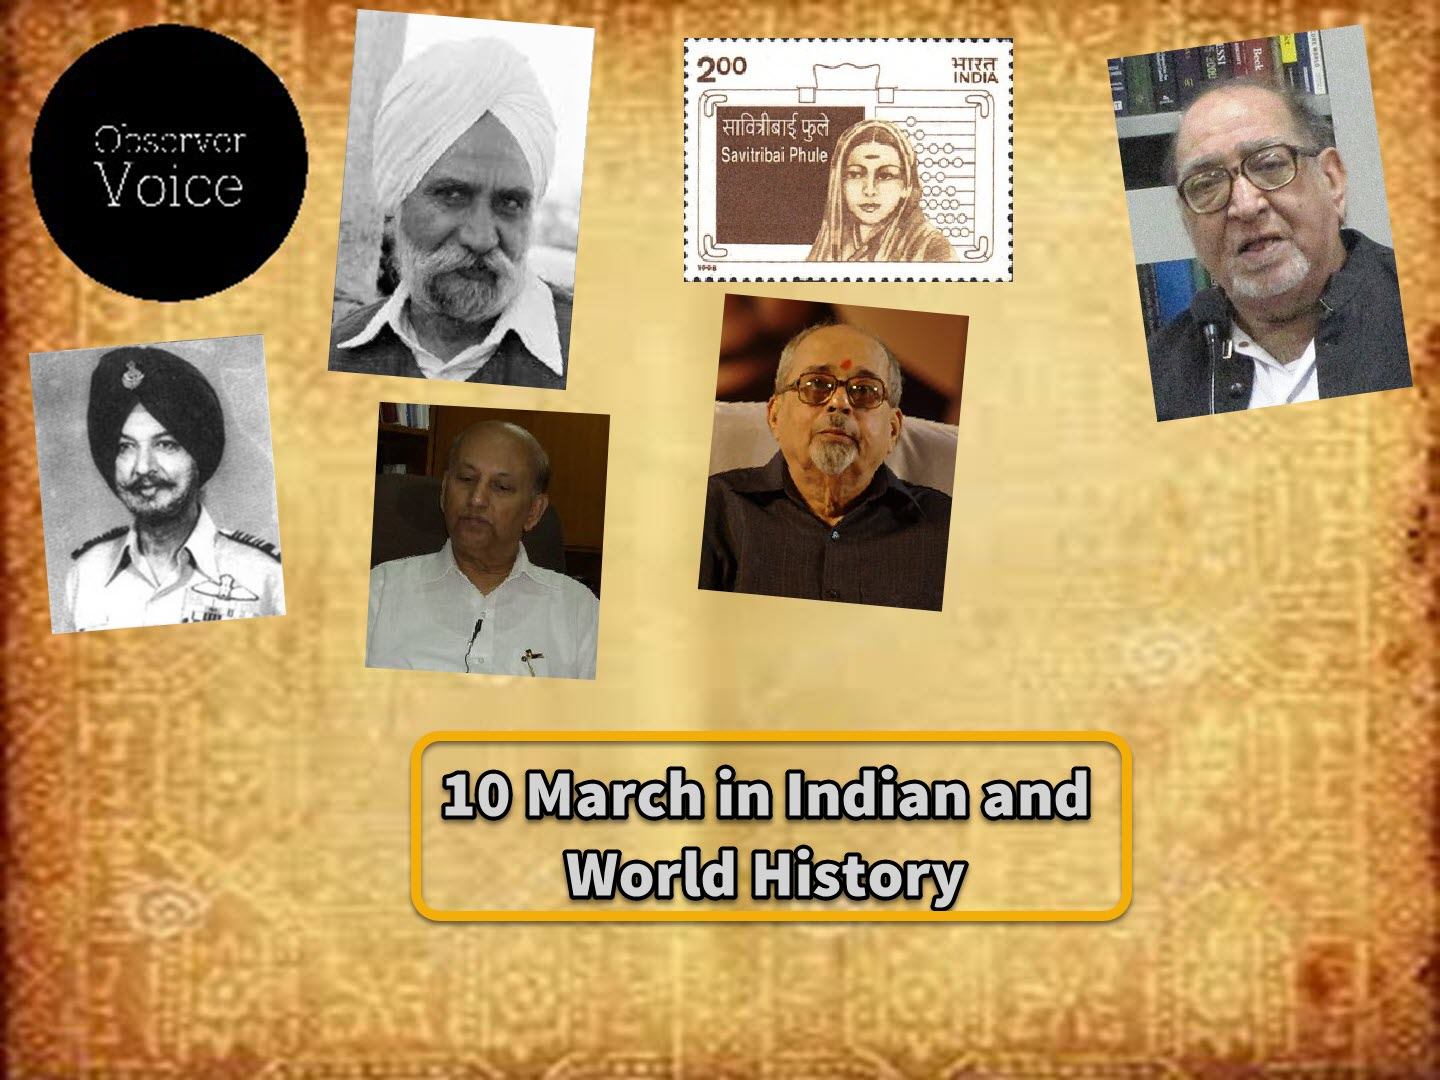 10 March in Indian and World History